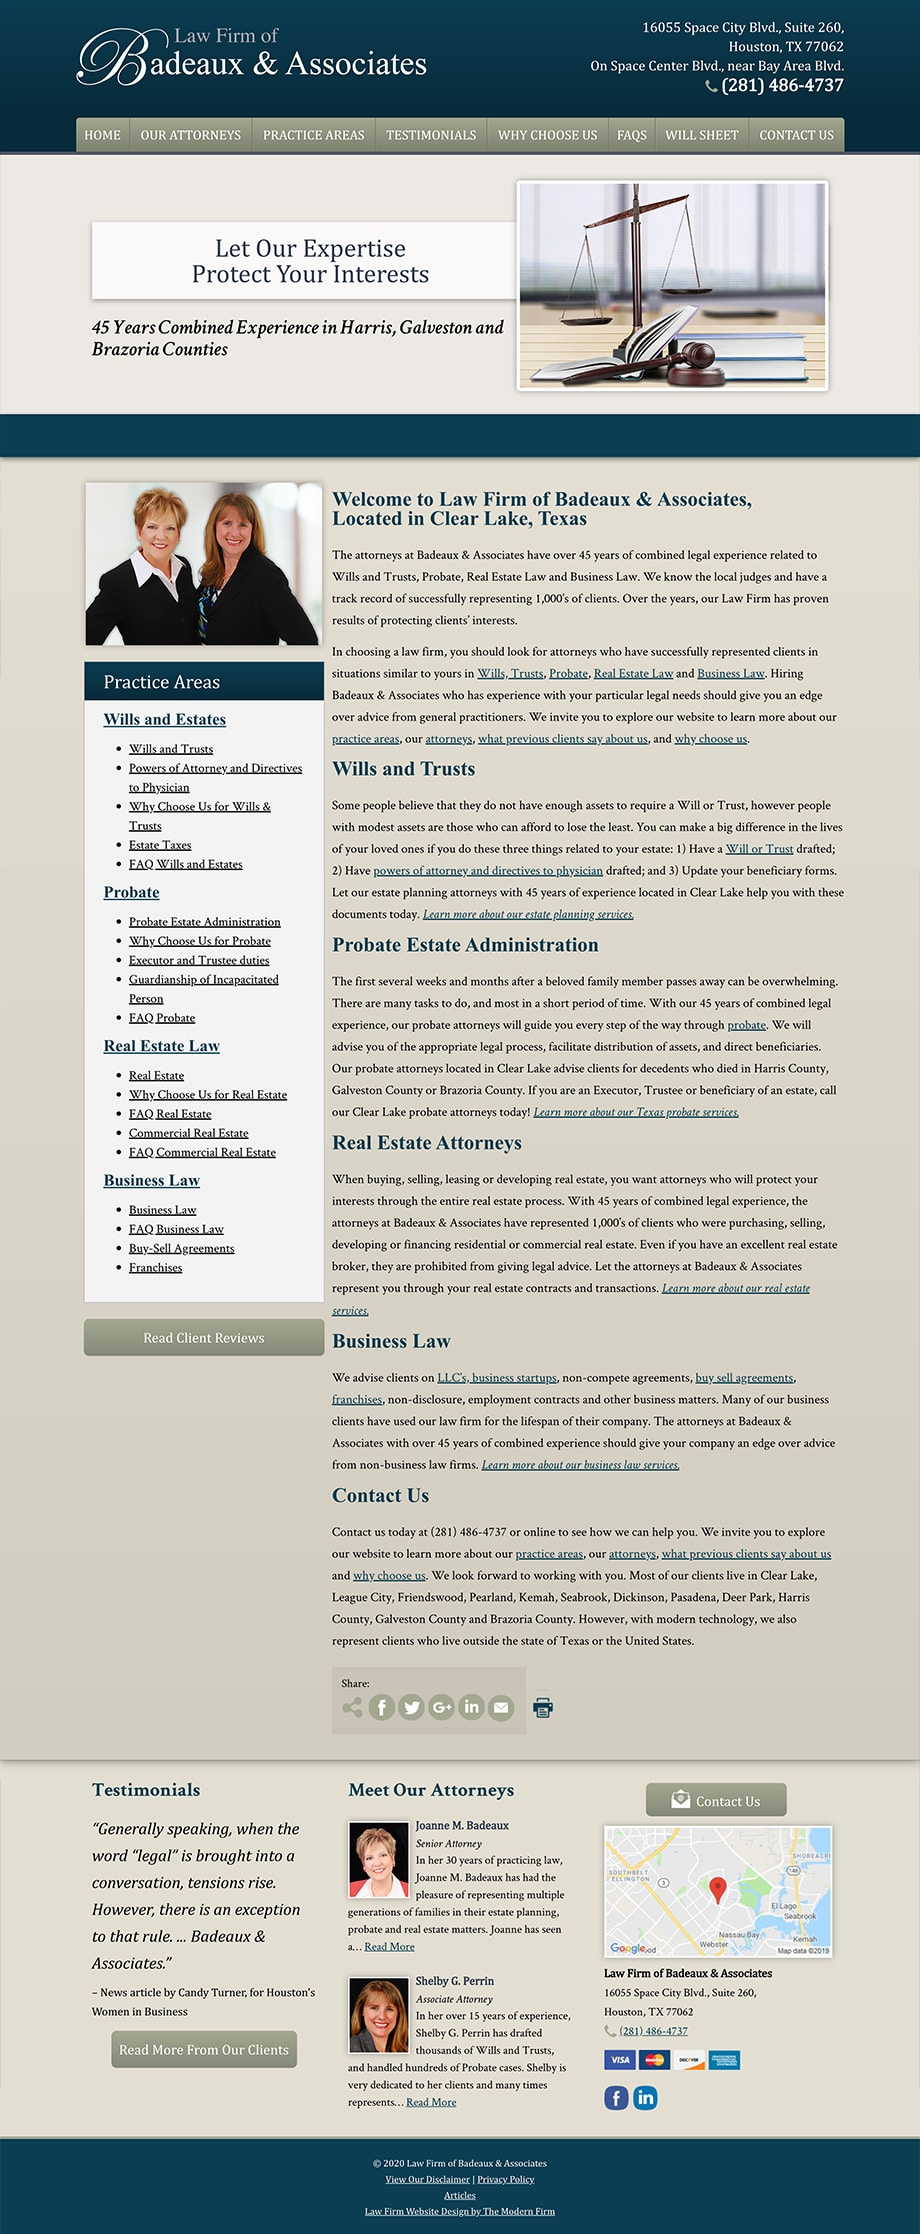 Law Firm Website Design for Law Firm of Badeaux & Associates